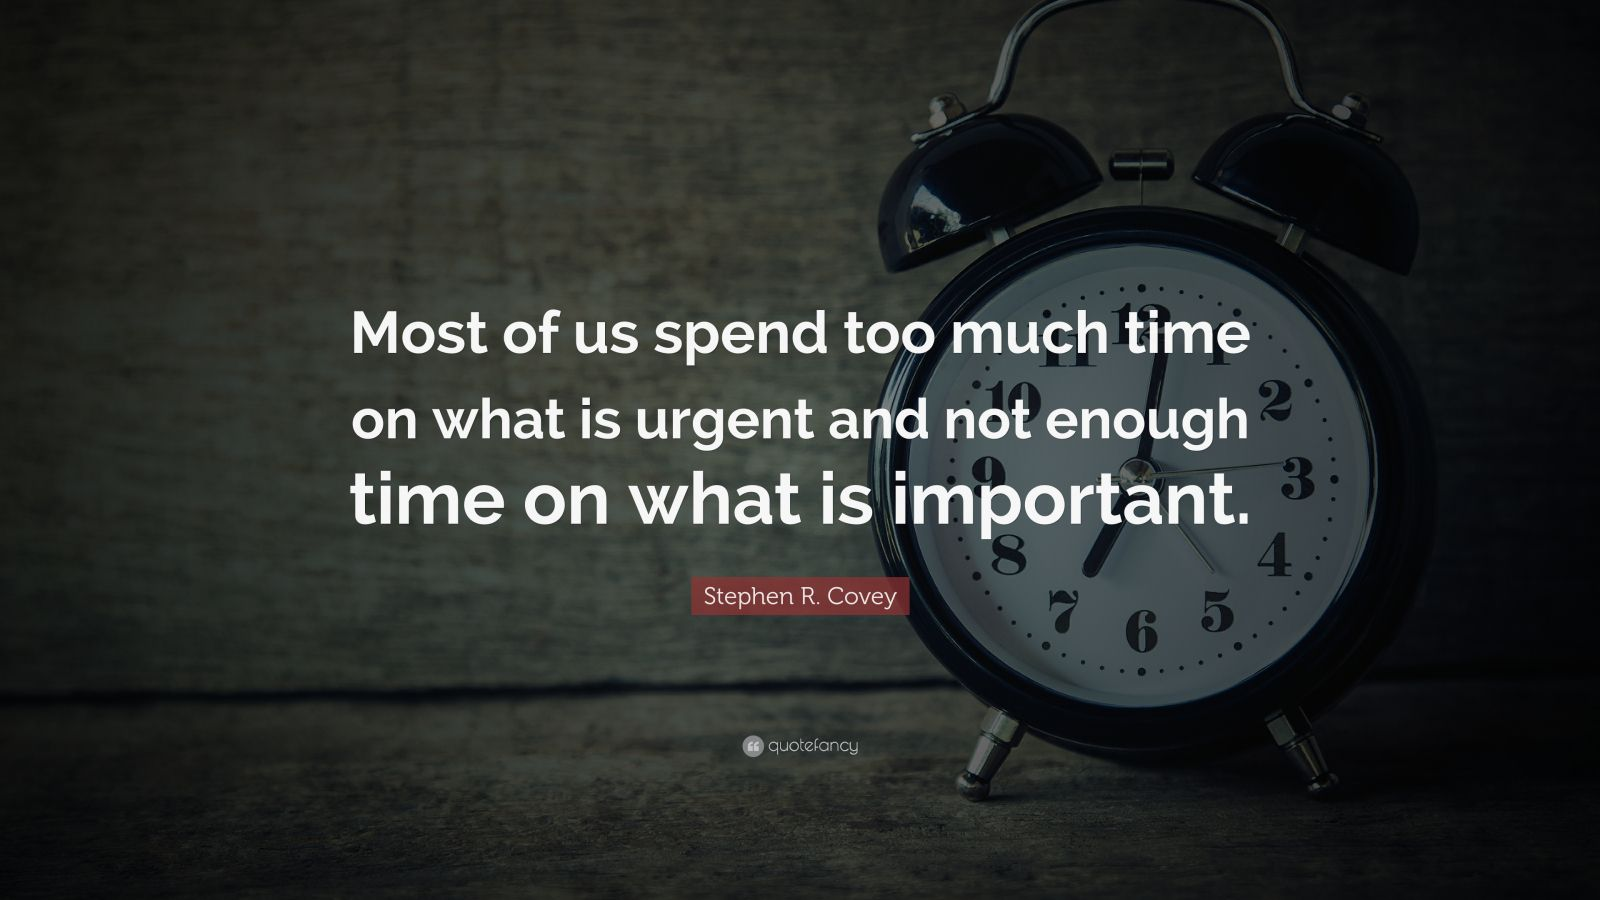 """Stephen R. Covey Quote: """"Most of us spend too much time on what is urgent and not enough time on what is important."""""""